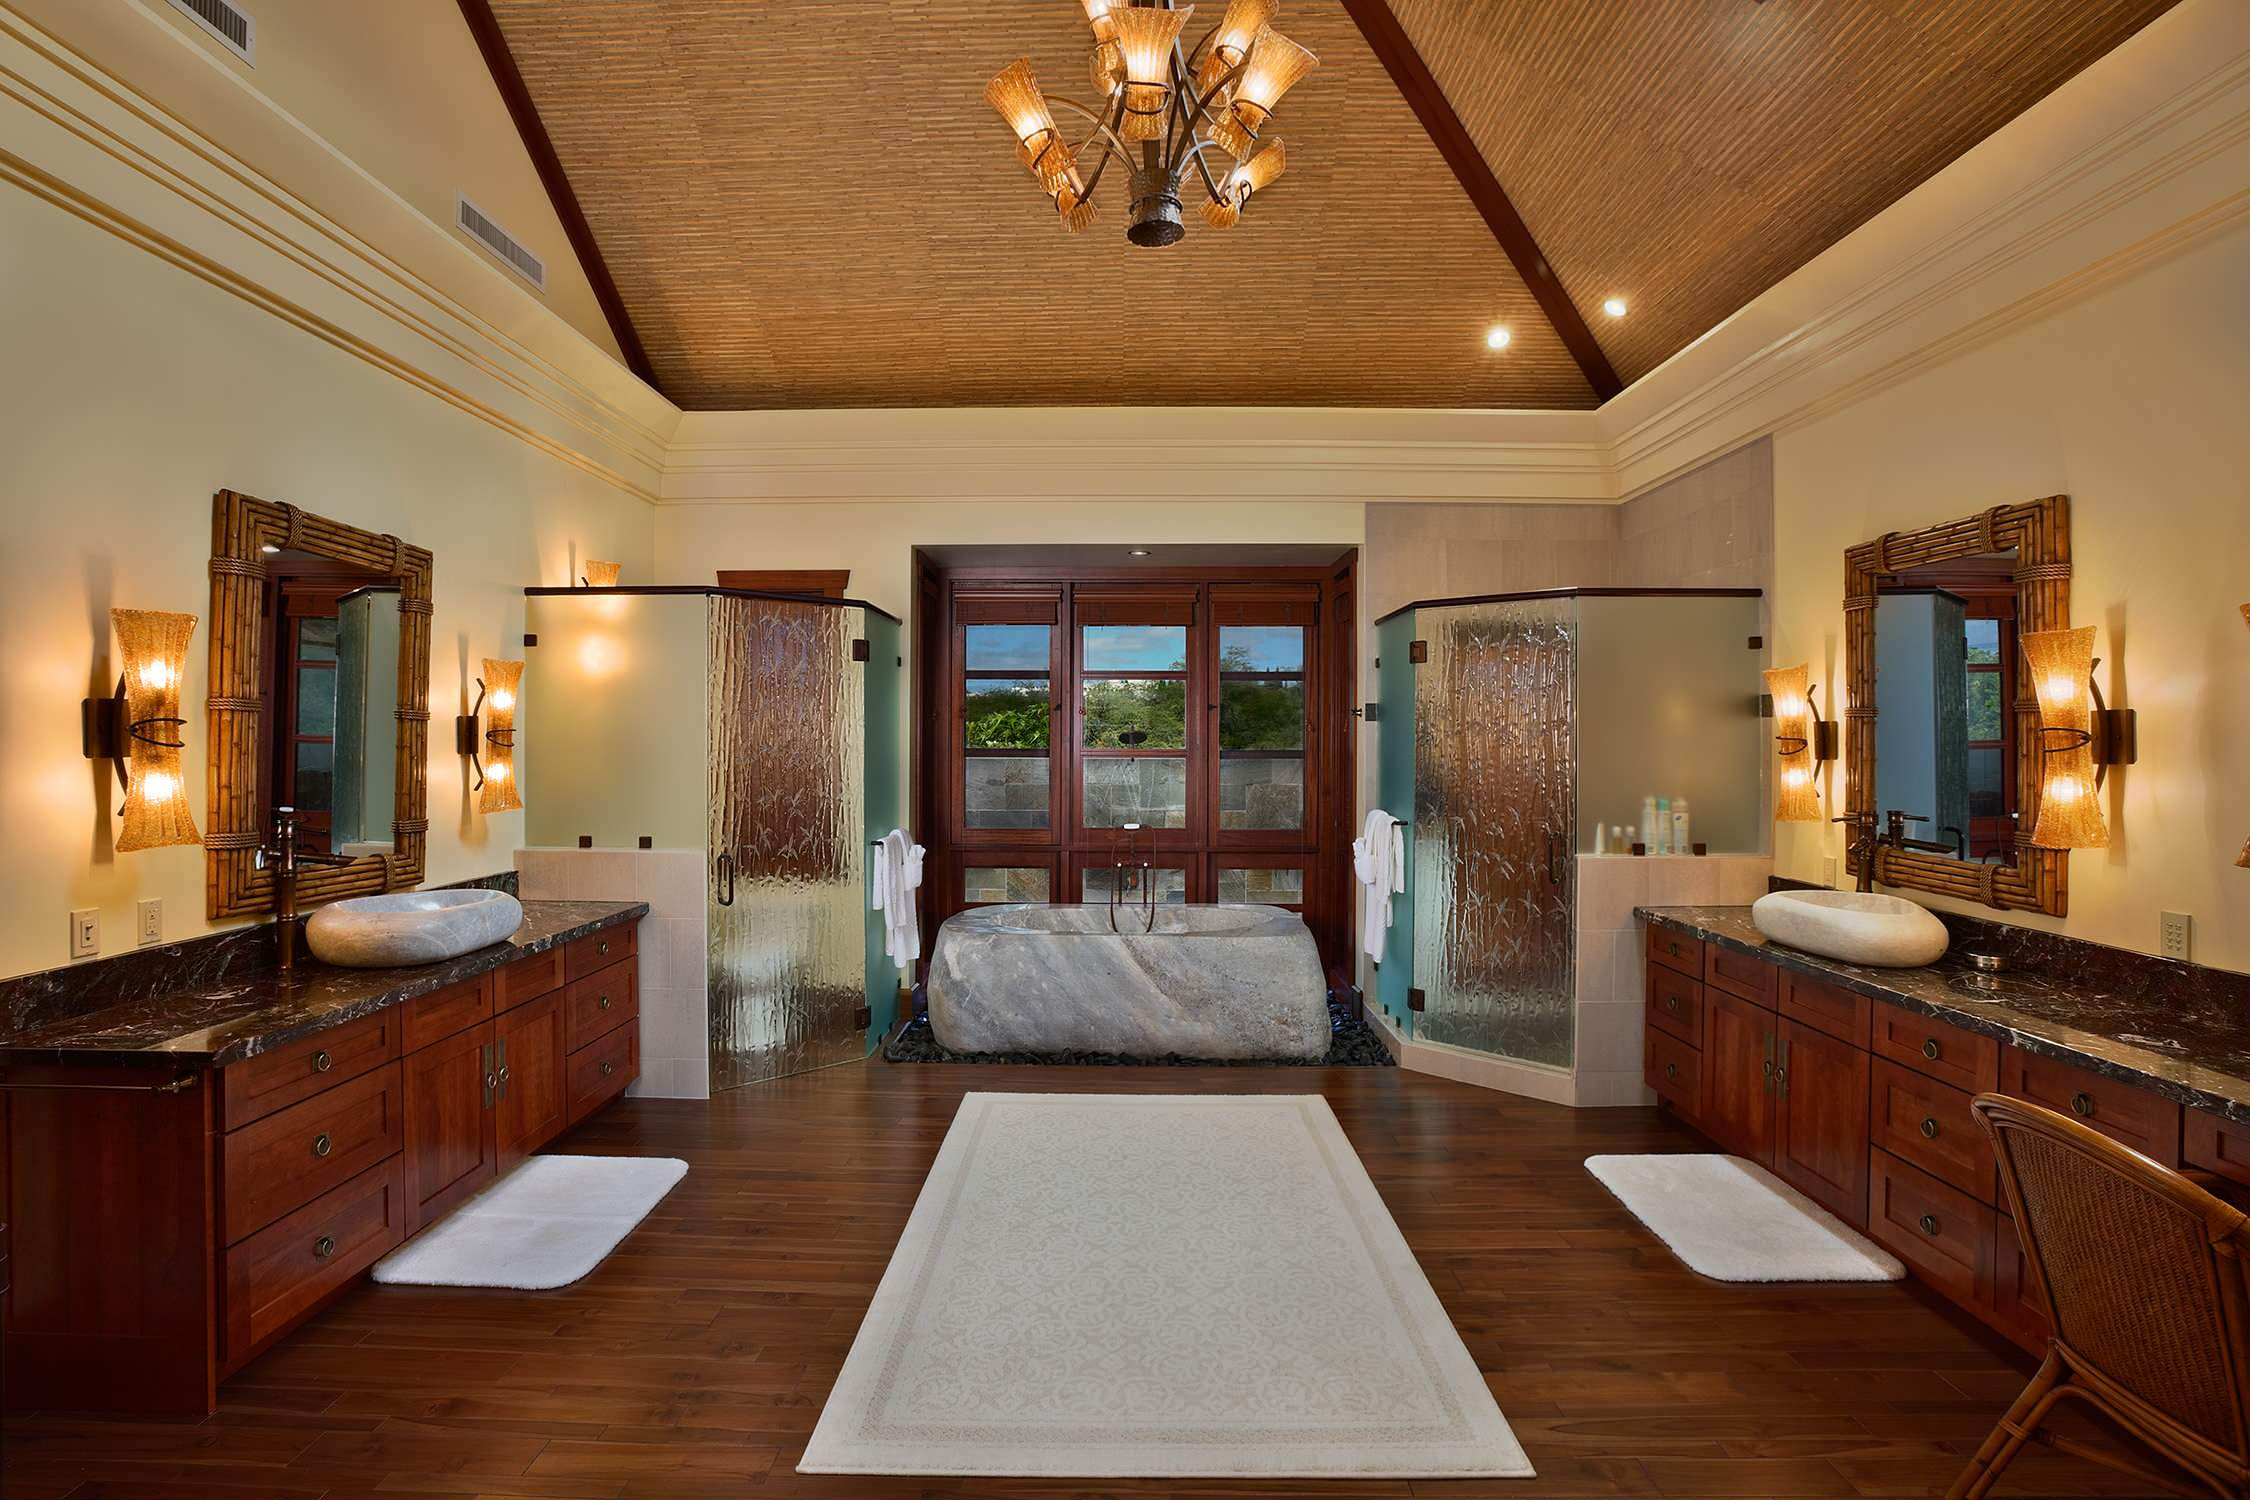 Architecture: Asian Bathroom With Ceiling Lighting Also Chandelier ...